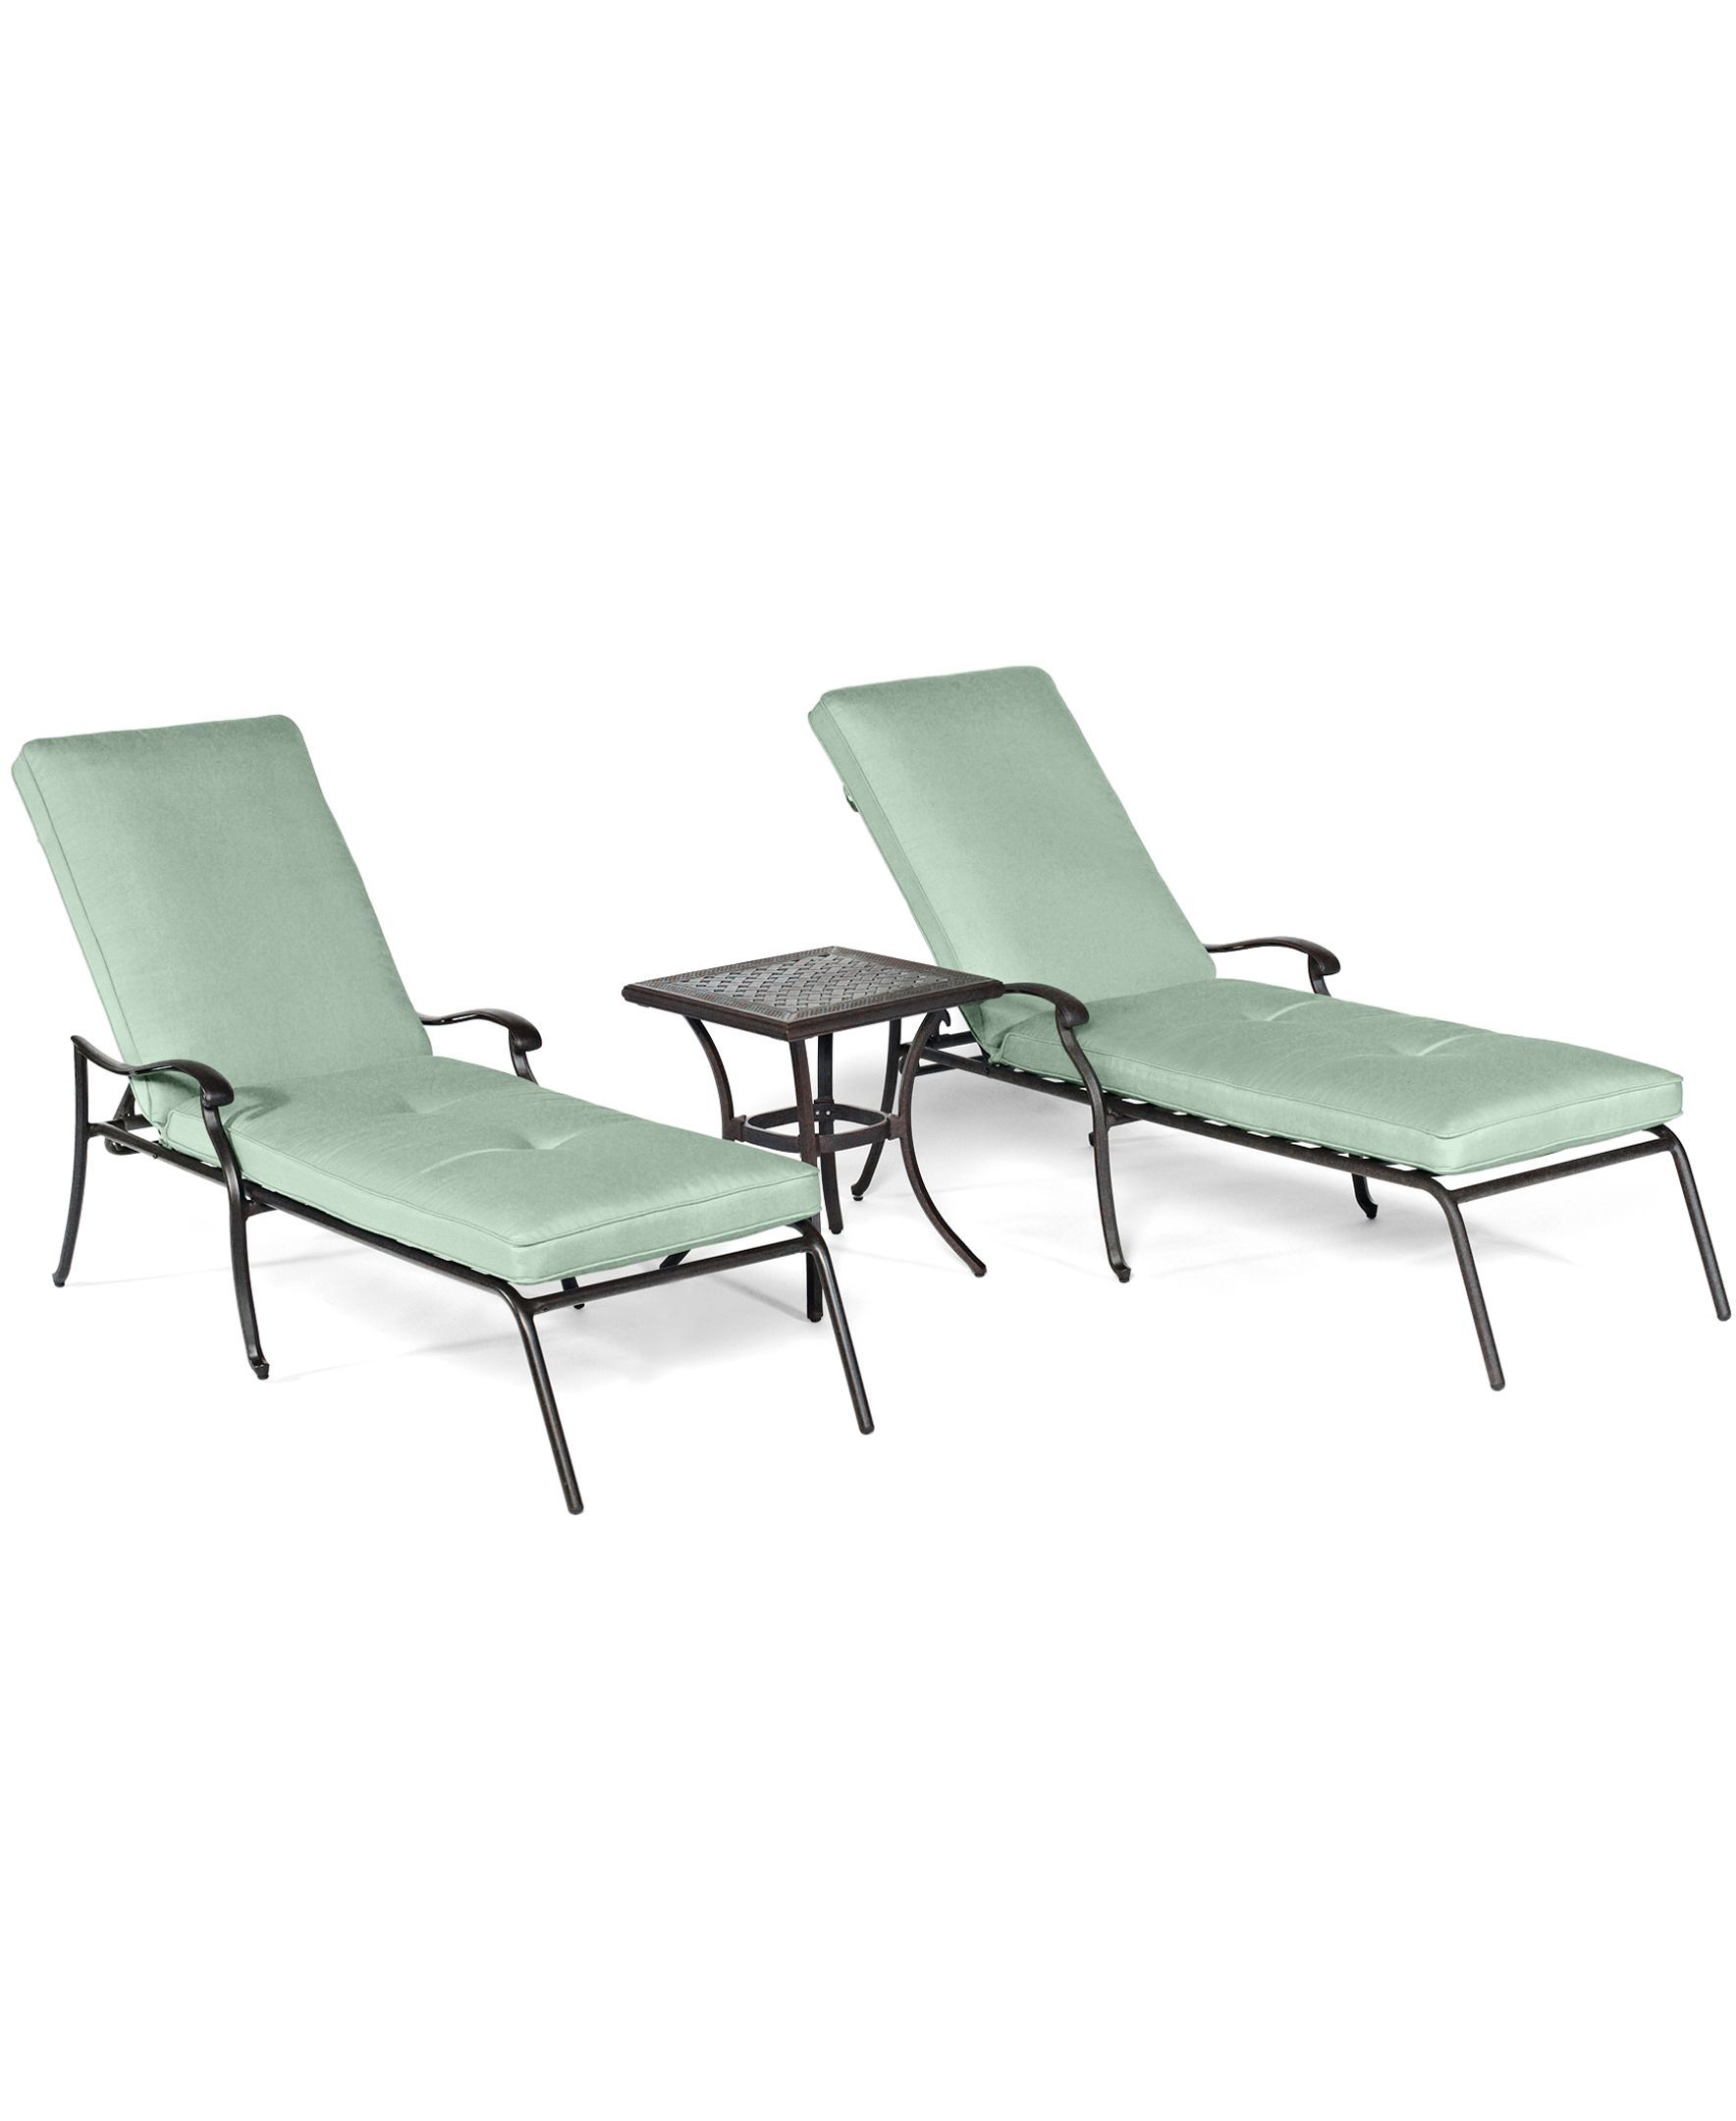 Nottingham Outdoor Patio Furniture, 3 Piece Chaise Set (2 Chaise Lounges, 1 End Table)